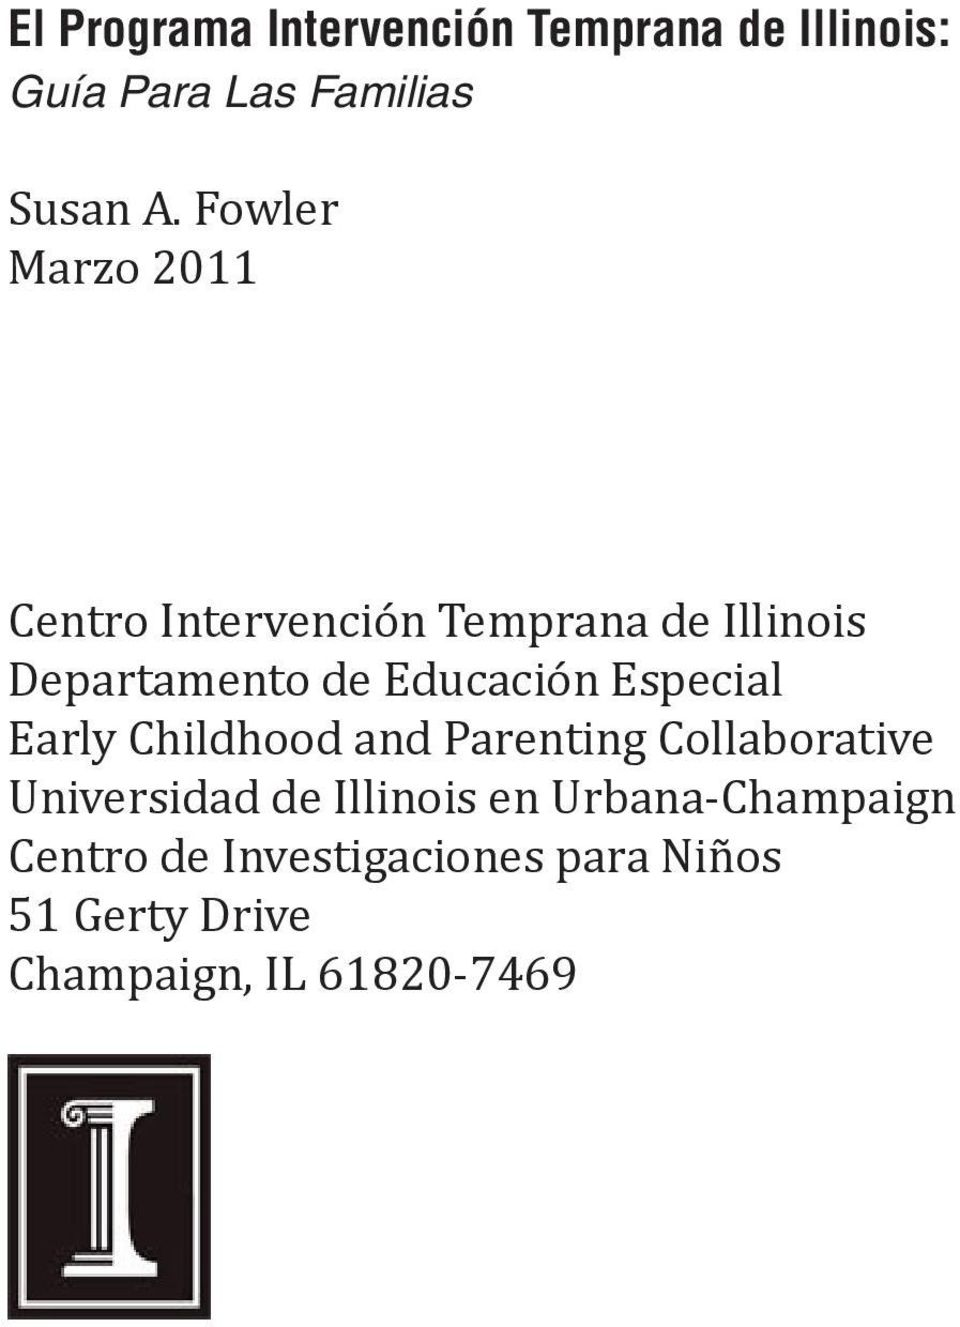 Especial Early Childhood and Parenting Collaborative Universidad de Illinois en